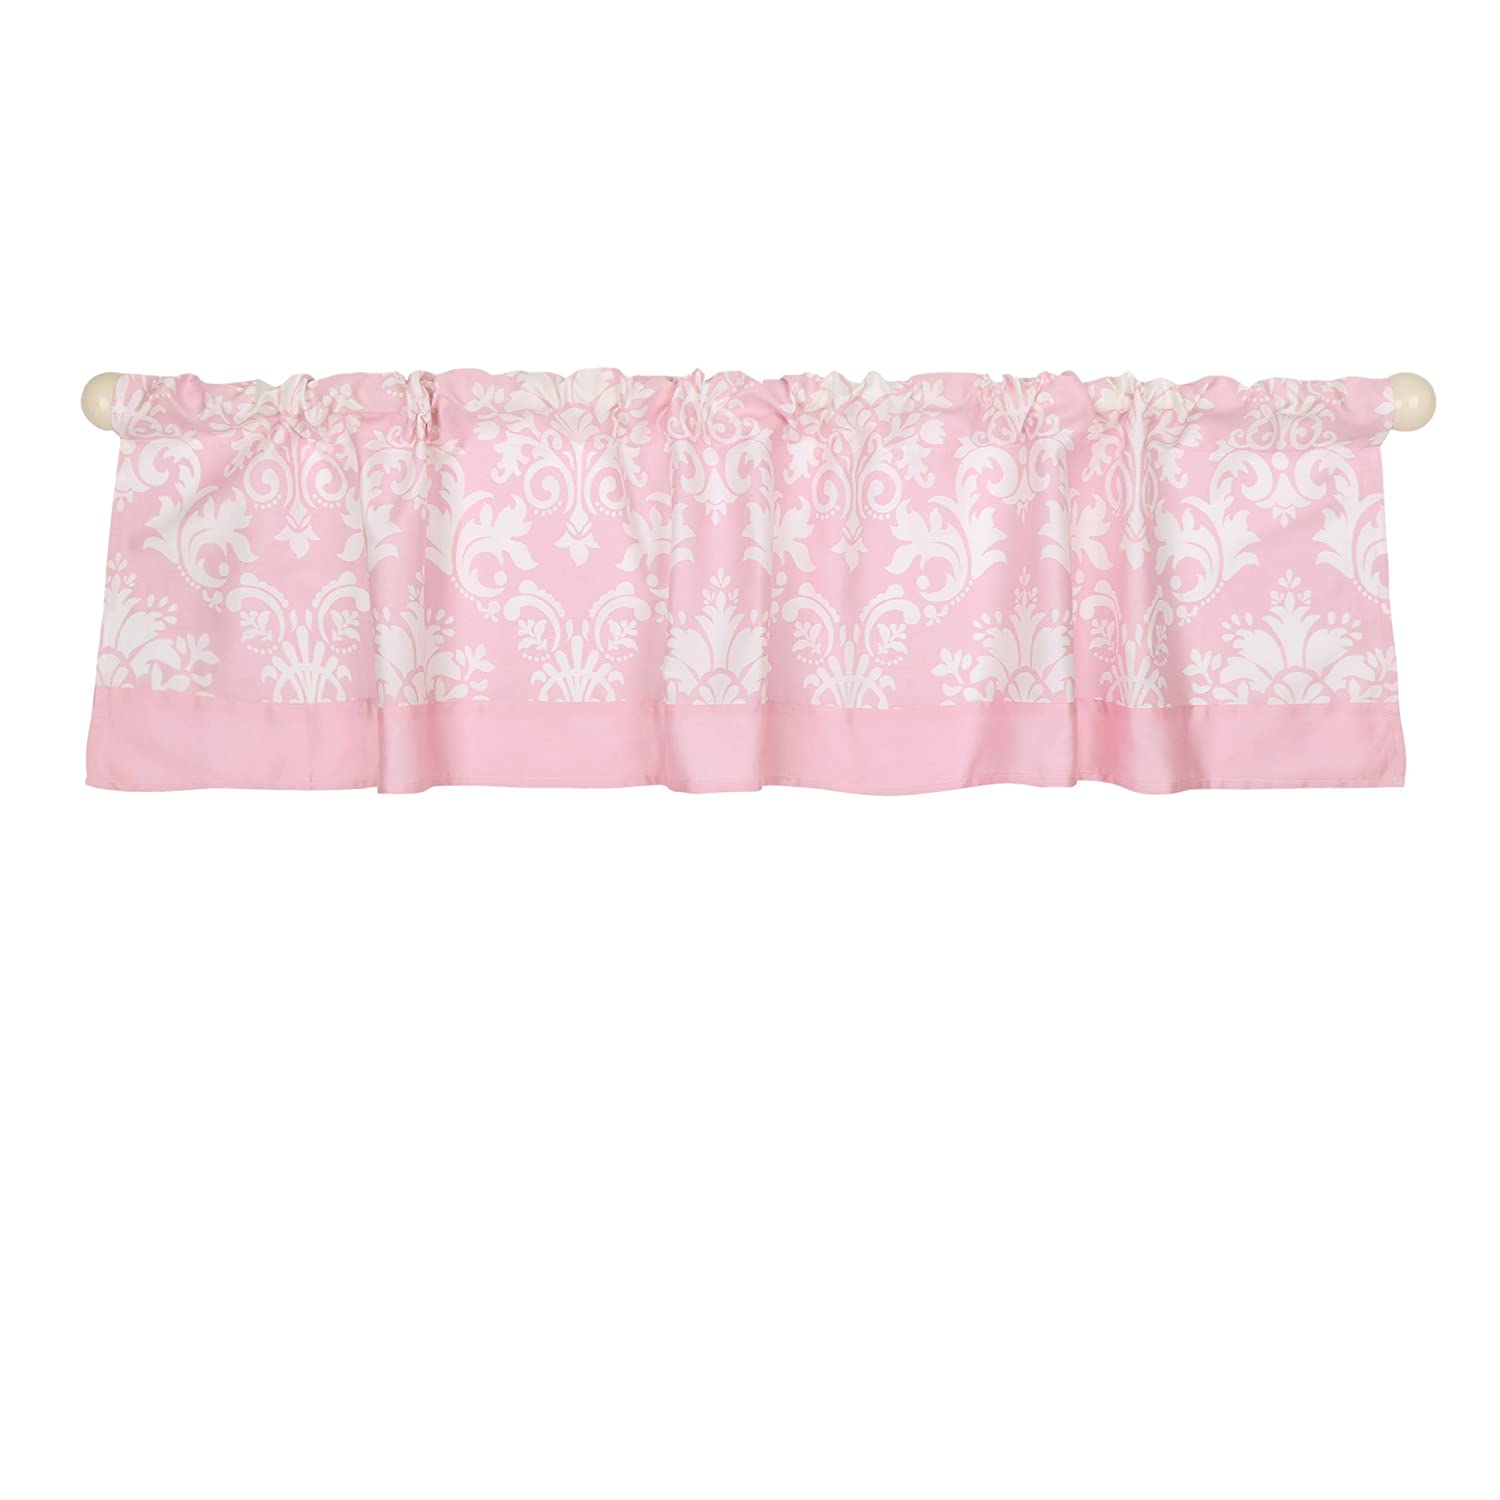 Pink Damask Print Window Valance by The Peanut Shell 100/% Cotton Sateen